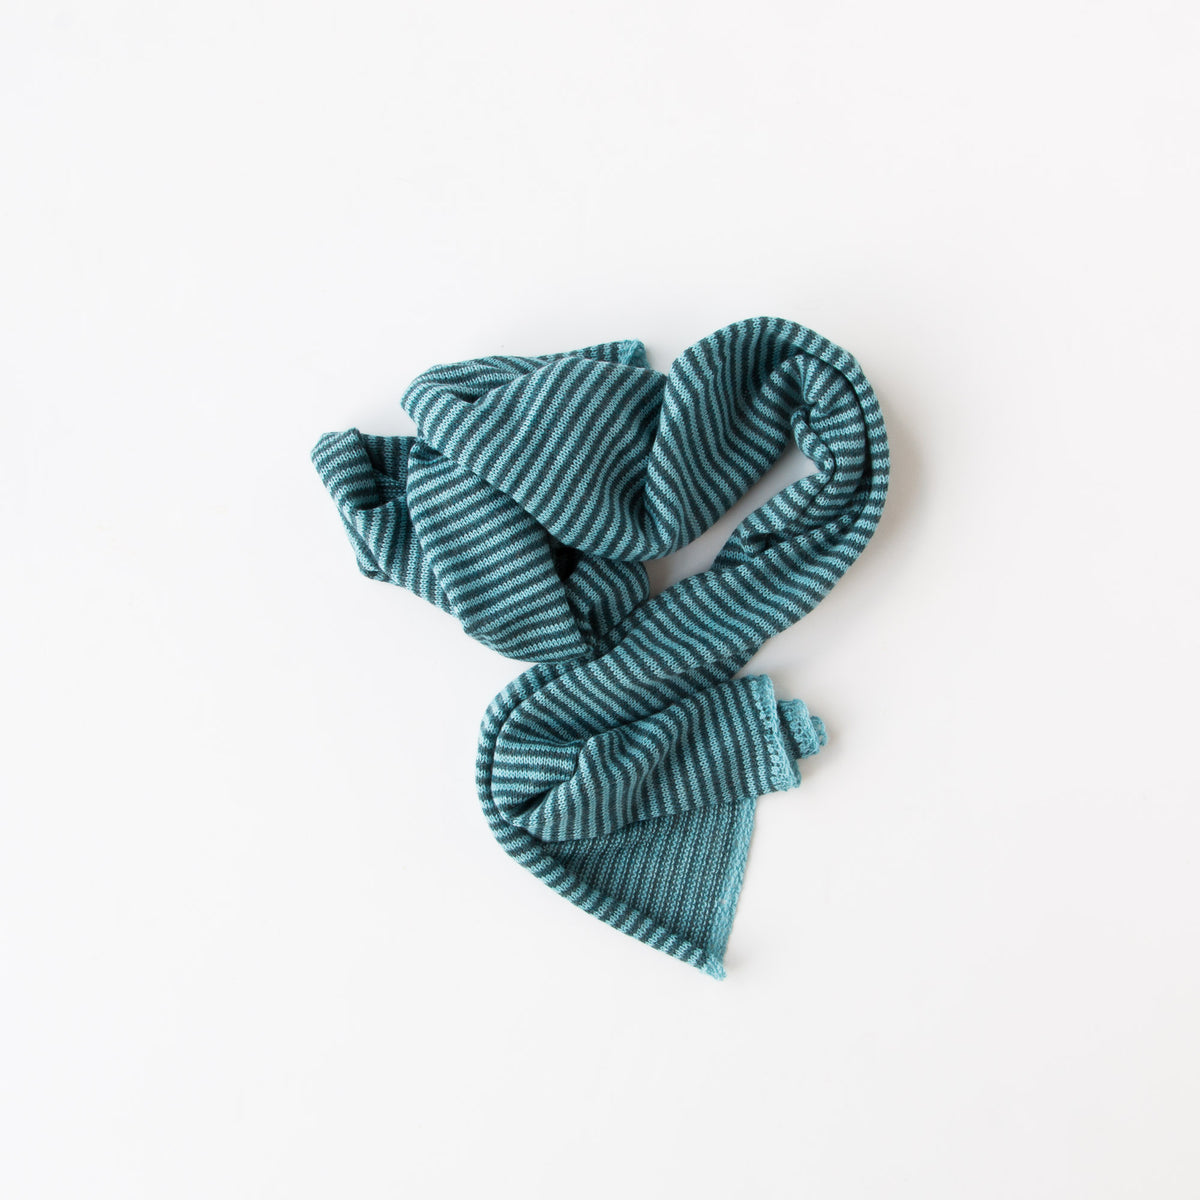 Top View - Aqua & Ocean - Baby Alpaca - Unisex Scarf With Fine Stripes & Contrasting Hems - Sold by Chic & Basta